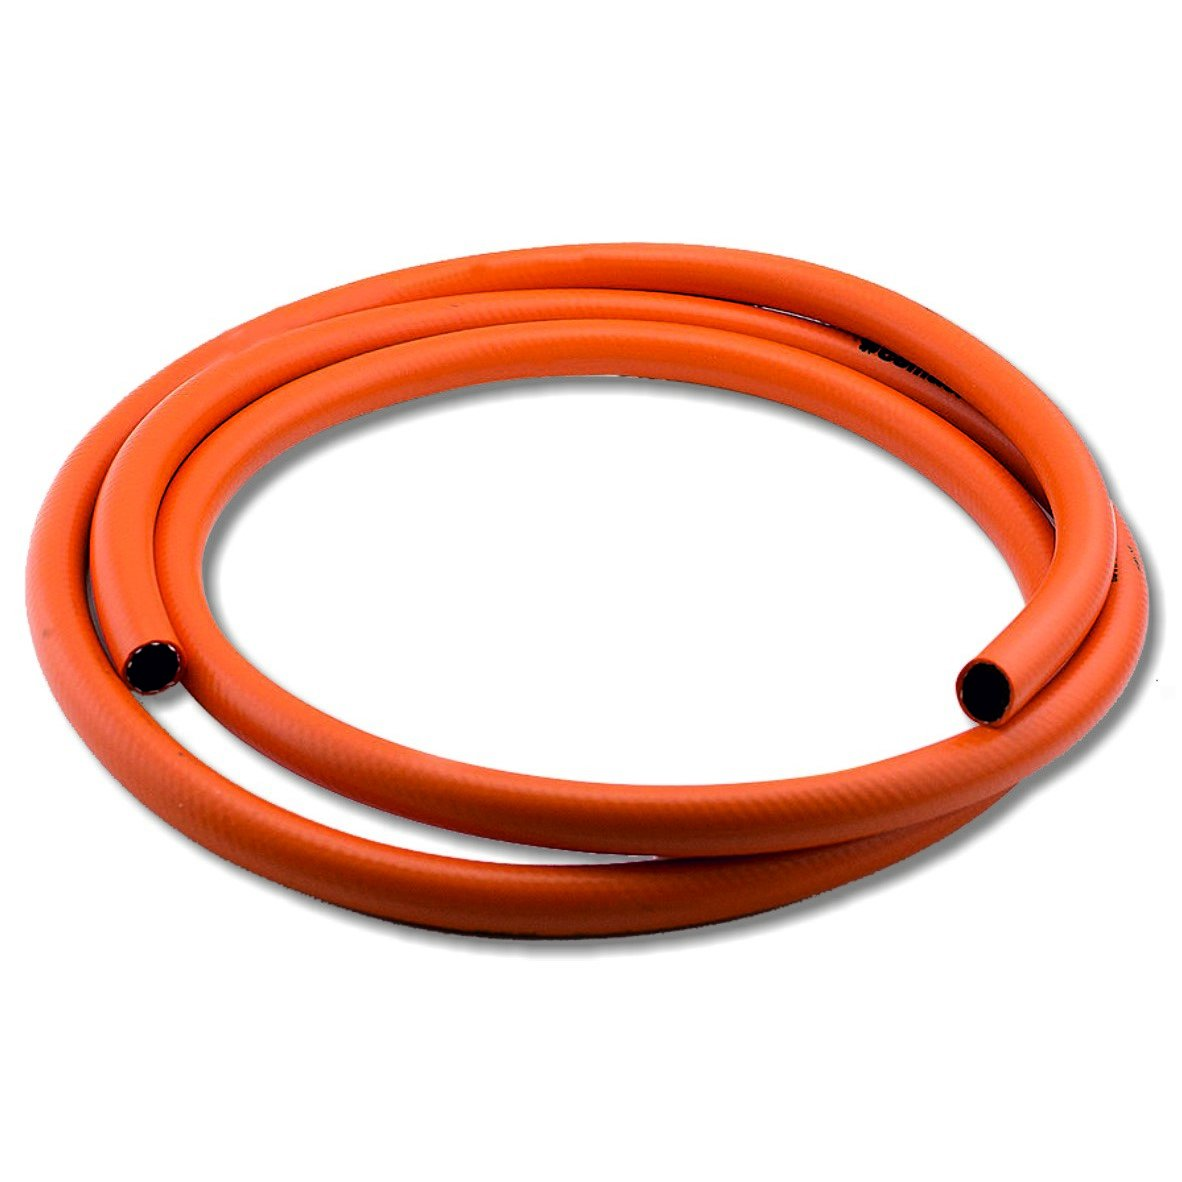 Gas Stove Replacement Parts Home Kitchen Element Wiring Diagram On For Electric Cooker And Hob Sunflame Lpg Rubber Hose Pipe Orange